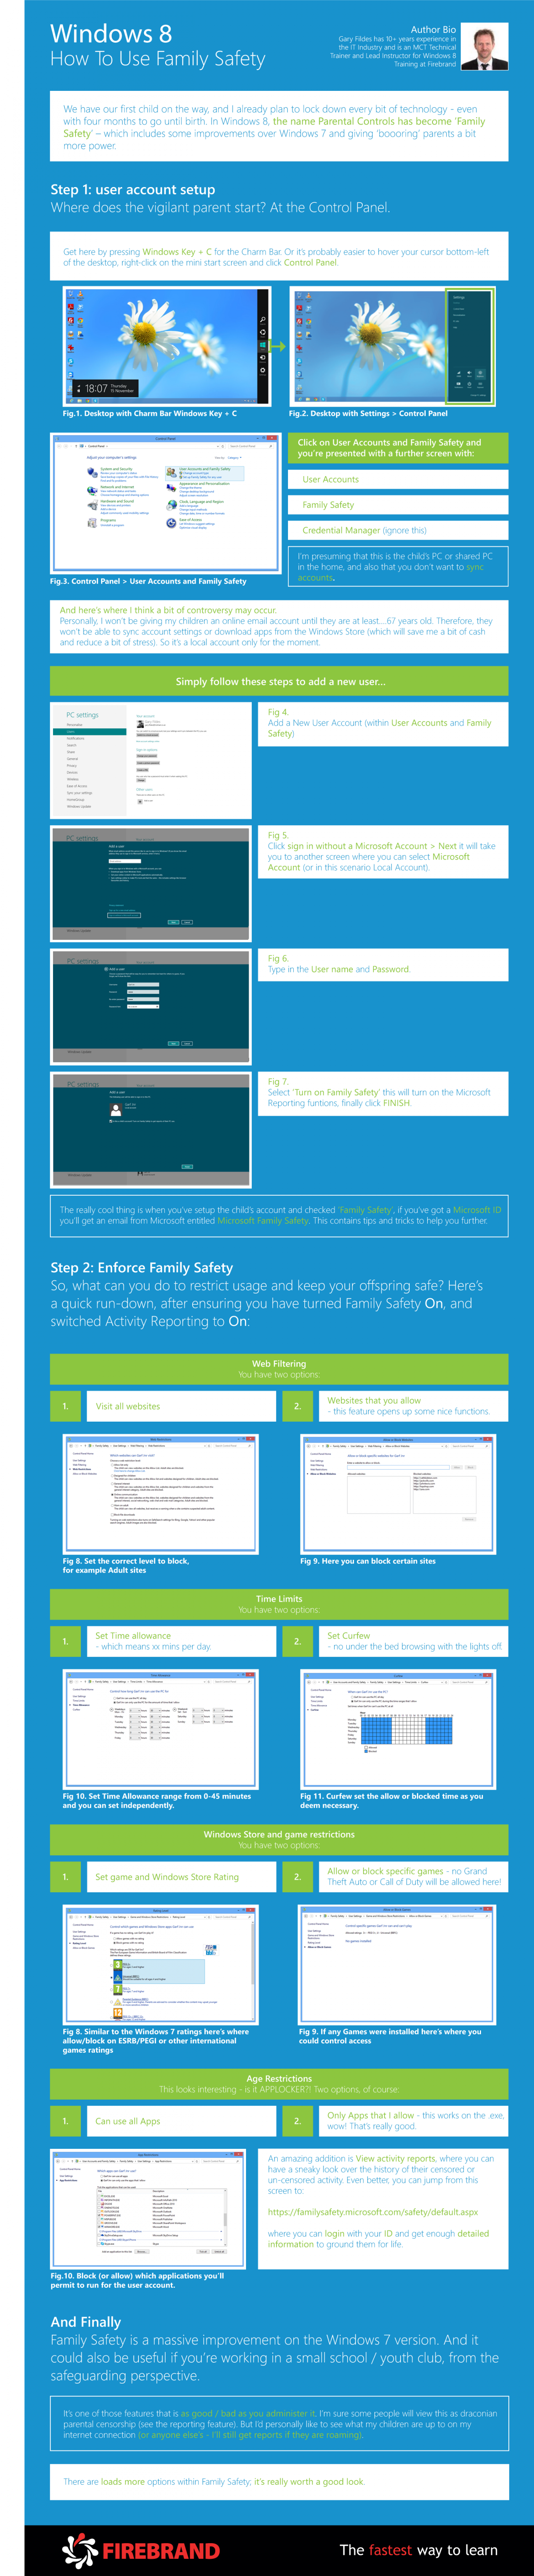 Windows 8 - How to use family safety Infographic